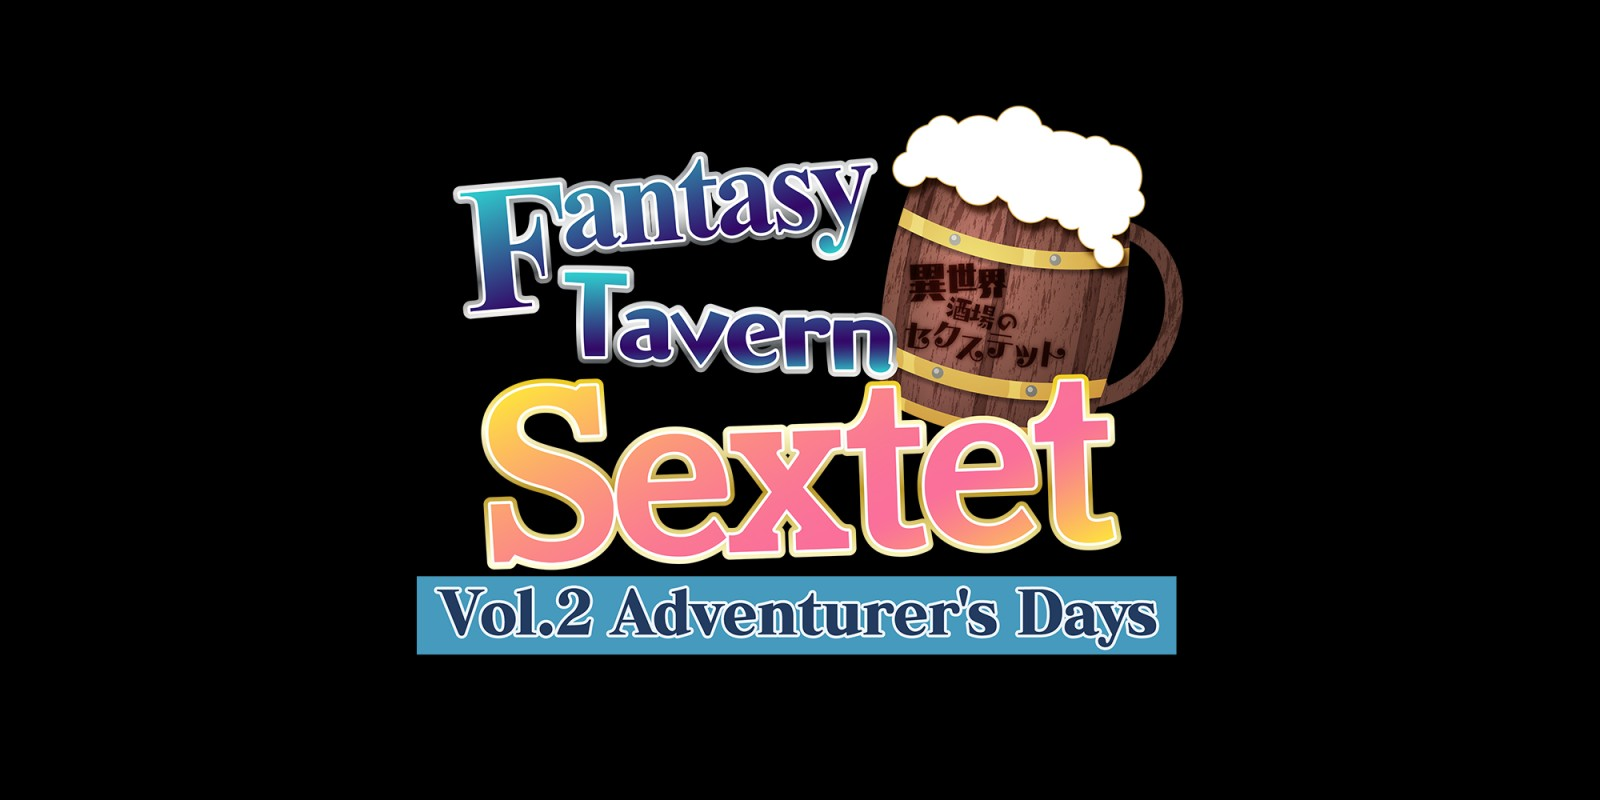 Fantasy Tavern Sextet -Vol.2 Adventurer's Days-